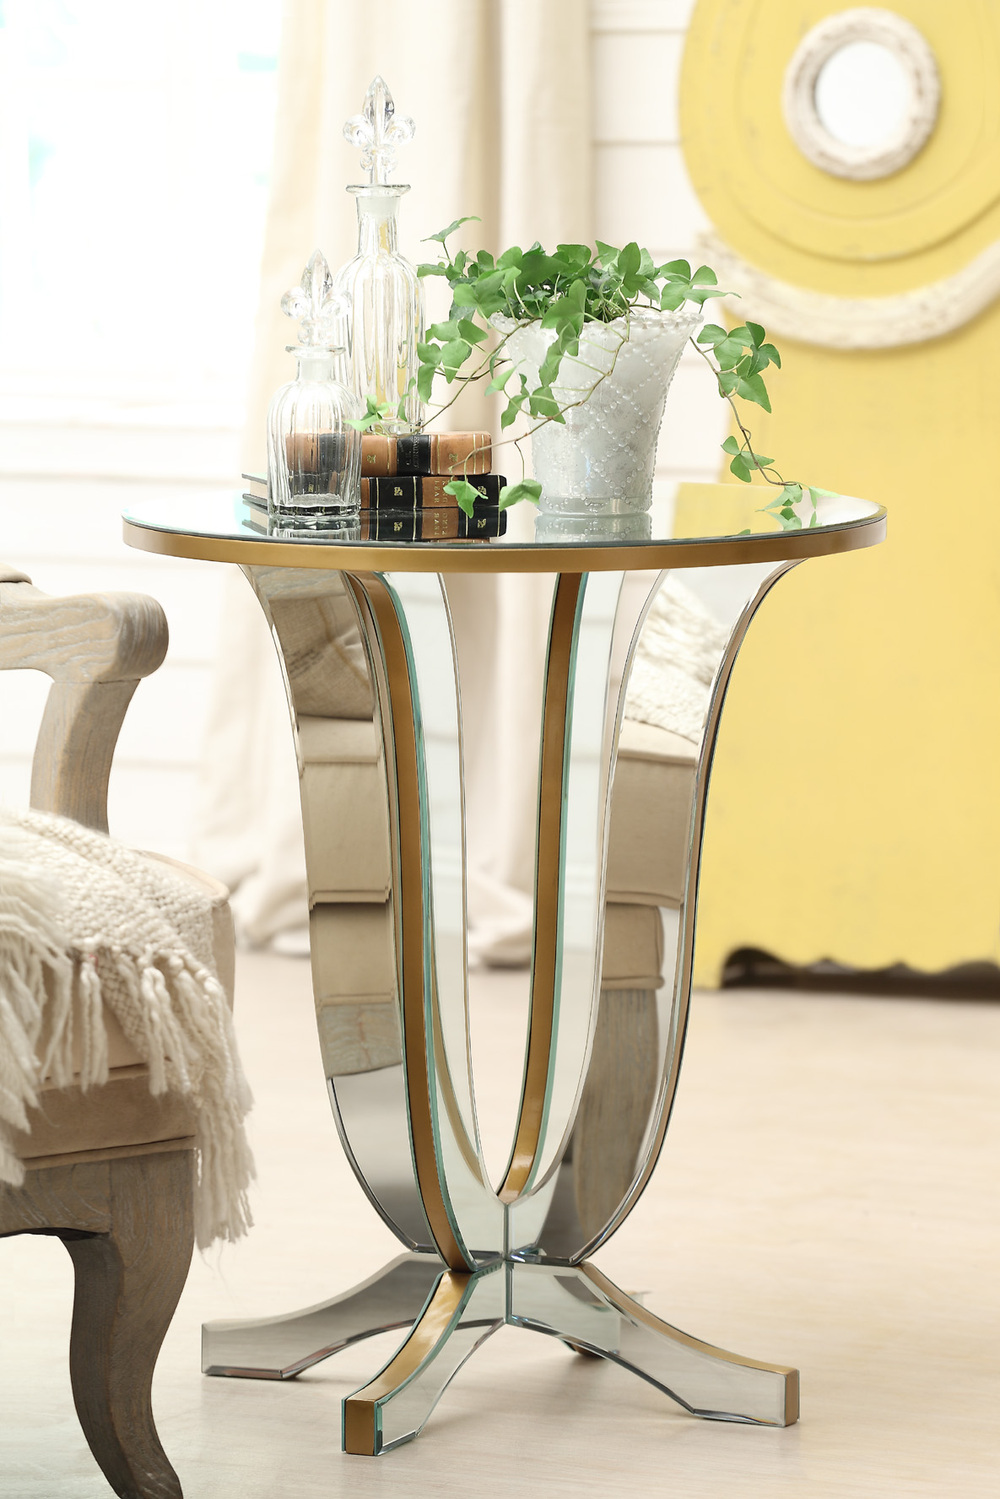 side tables for living room home decor ideas editorial ink furniture charming idea decoration using round mirrored table including yellow wall and queen anne chair legs divine